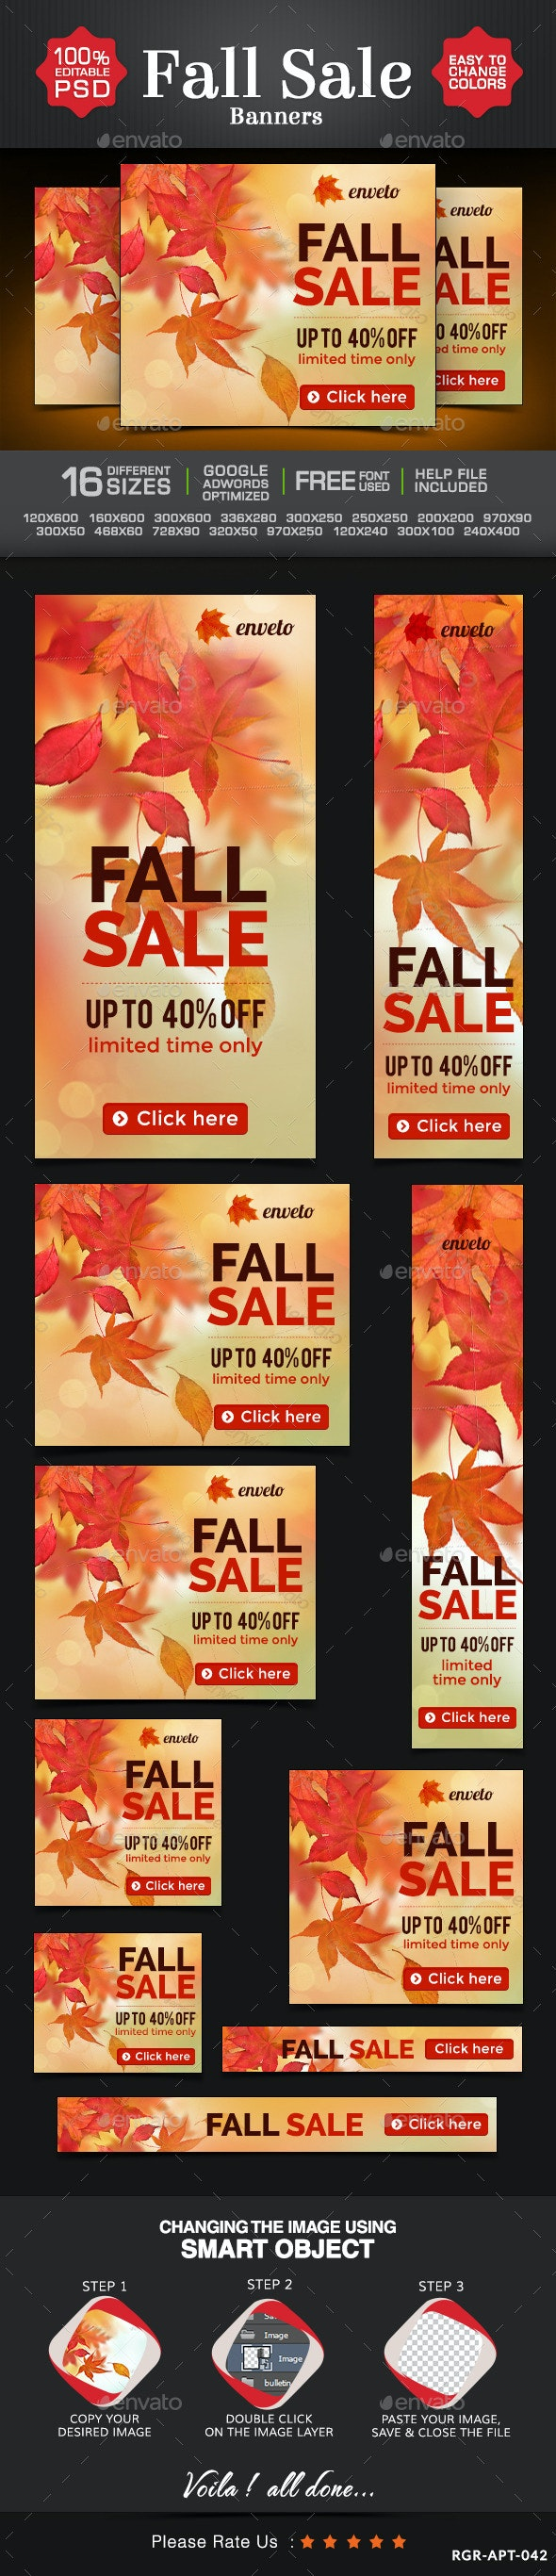 Fall Sale Marketing Banner Design - Banners & Ads Web Elements